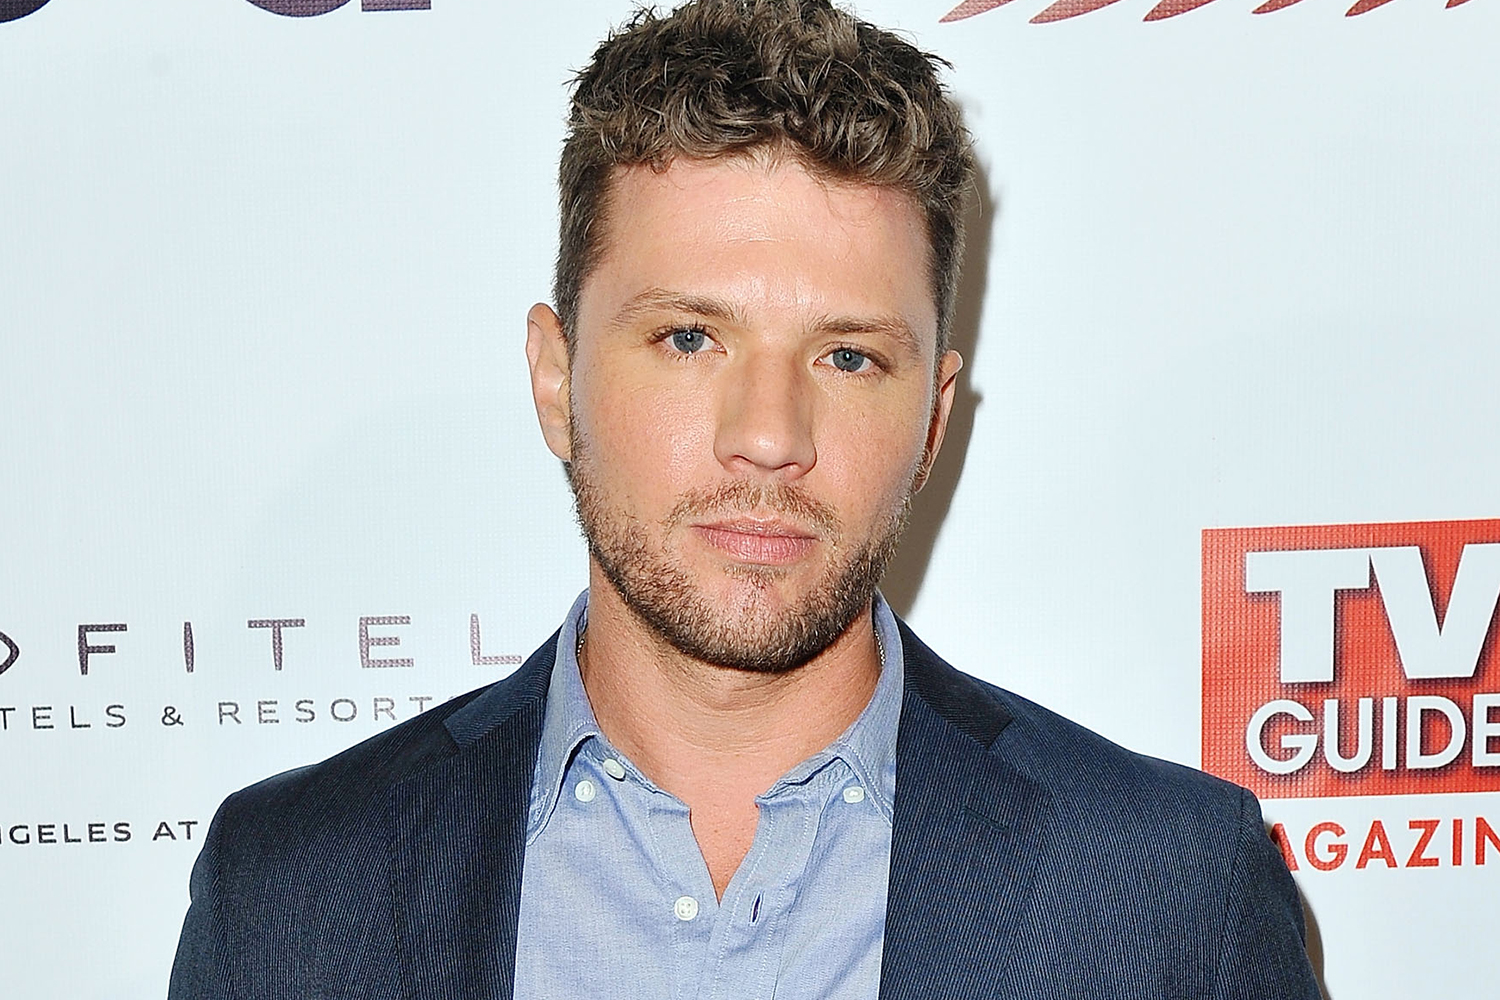 Ryan Phillippe Claims He Never Assaulted Ex-Girlfriend